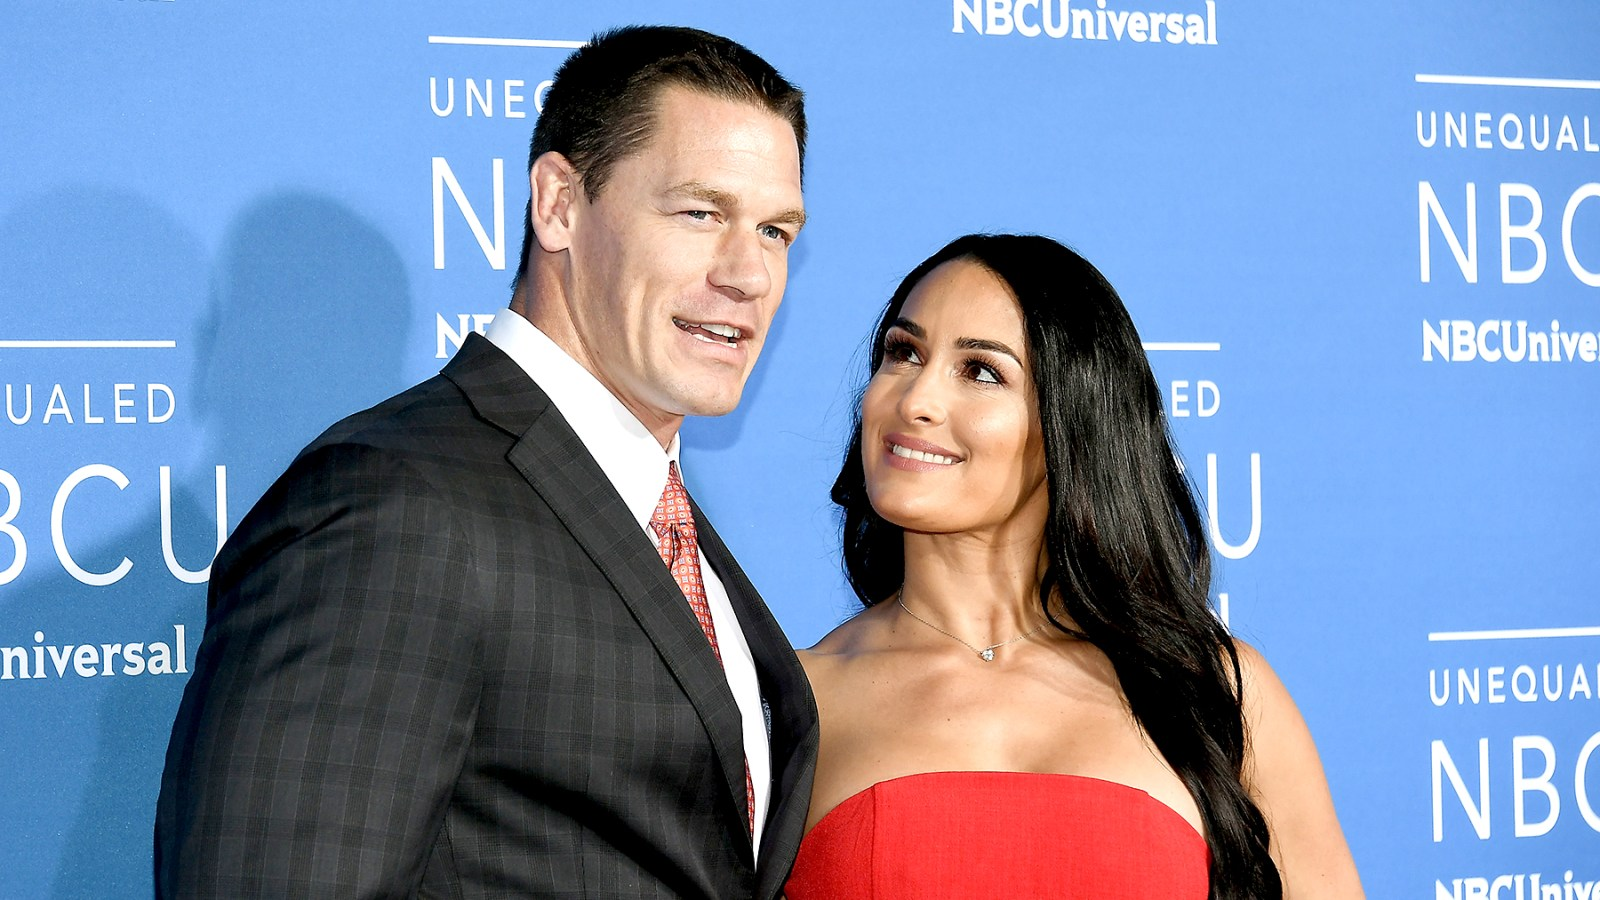 John Cena and Nikki Bella: A Timeline of Their Relationship